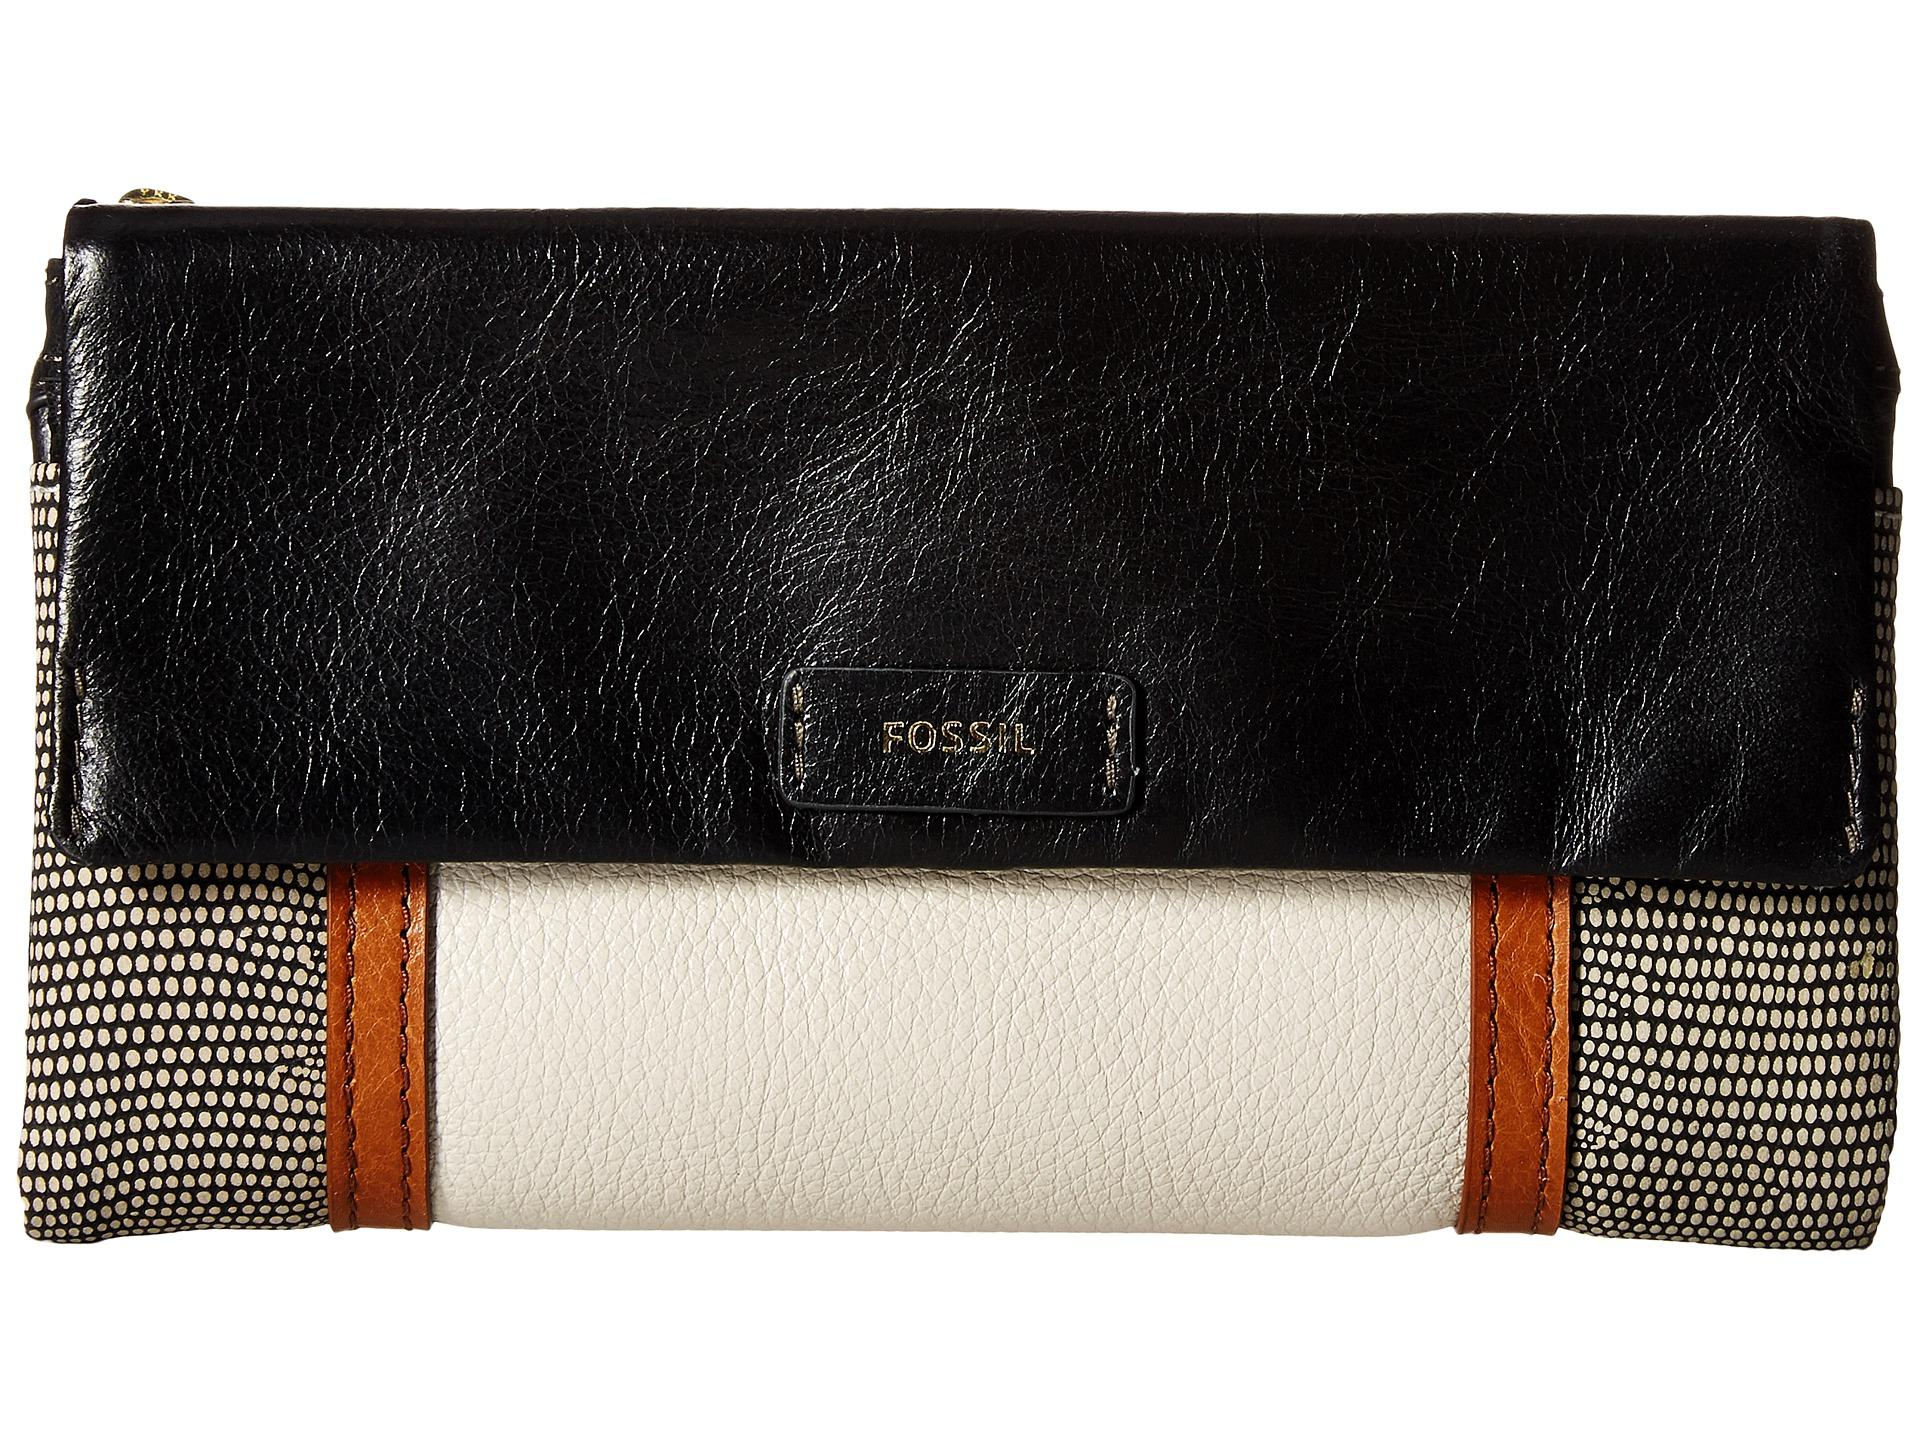 dd5b9da91d28 Lyst - Fossil Ellis Clutch in Black